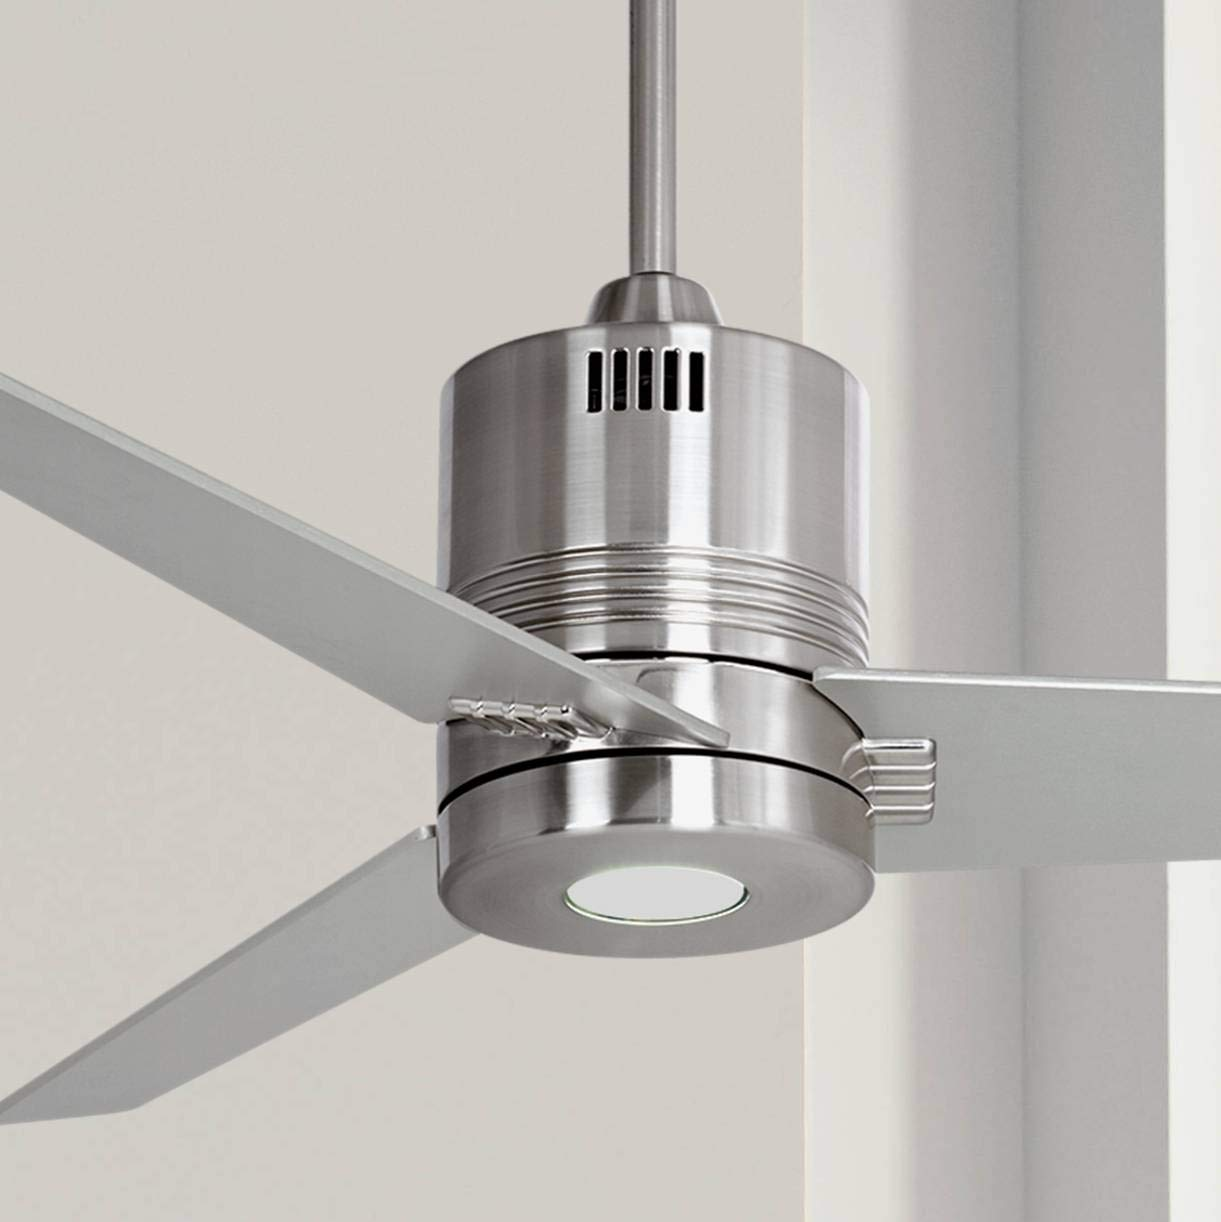 44 Casa Metro Modern Industrial Ceiling Fan with Light LED Remote Control Brushed Nickel for Living Room Kitchen Bedroom Dining – Casa Vieja